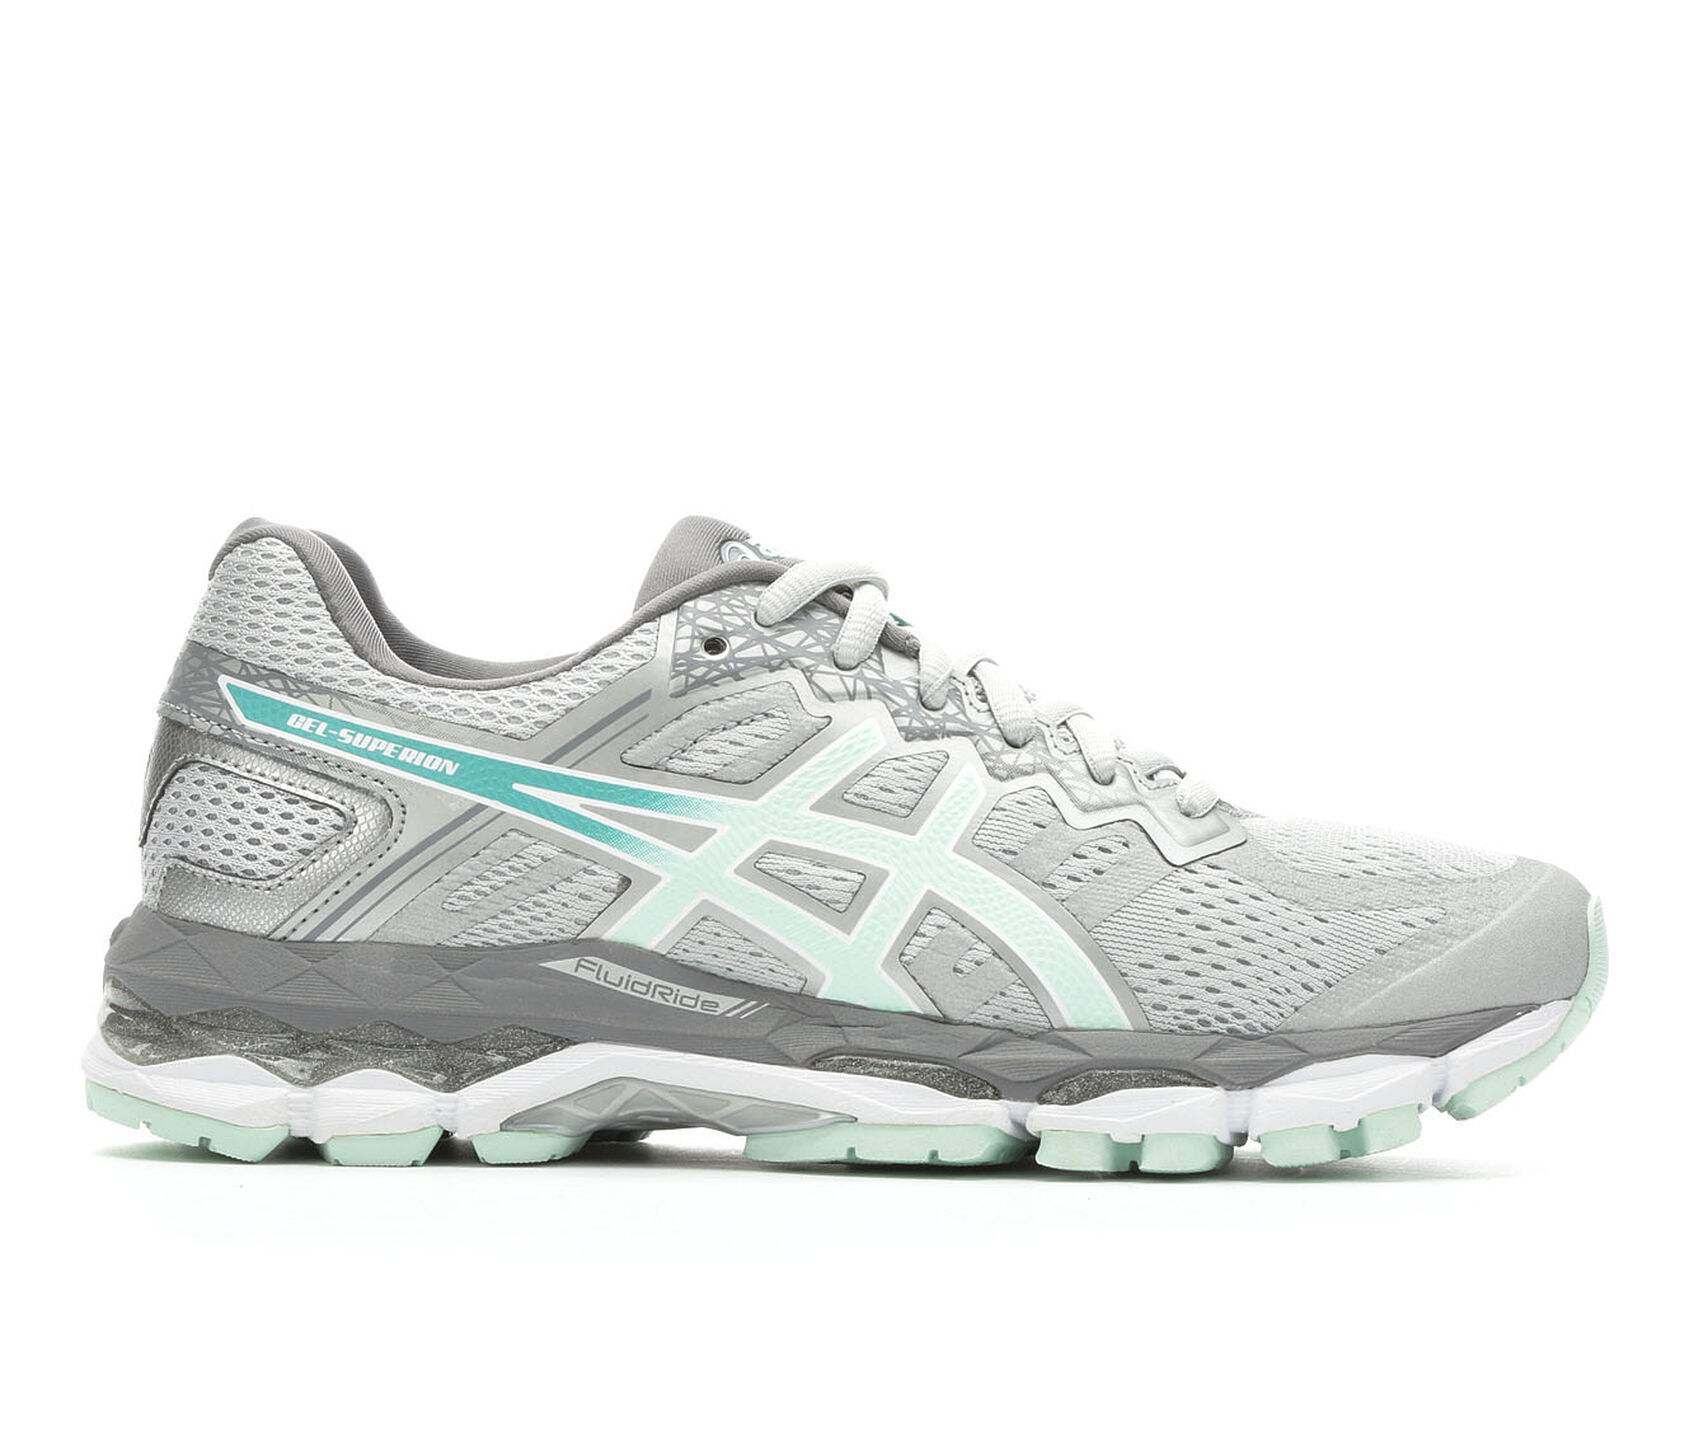 Running Shoes for Men. ASICS men's running shoes are constructed to help you take your run to the next level. With the perfect balance of technology and design, ASICS offers a variety of styles and support to help you achieve your best run.